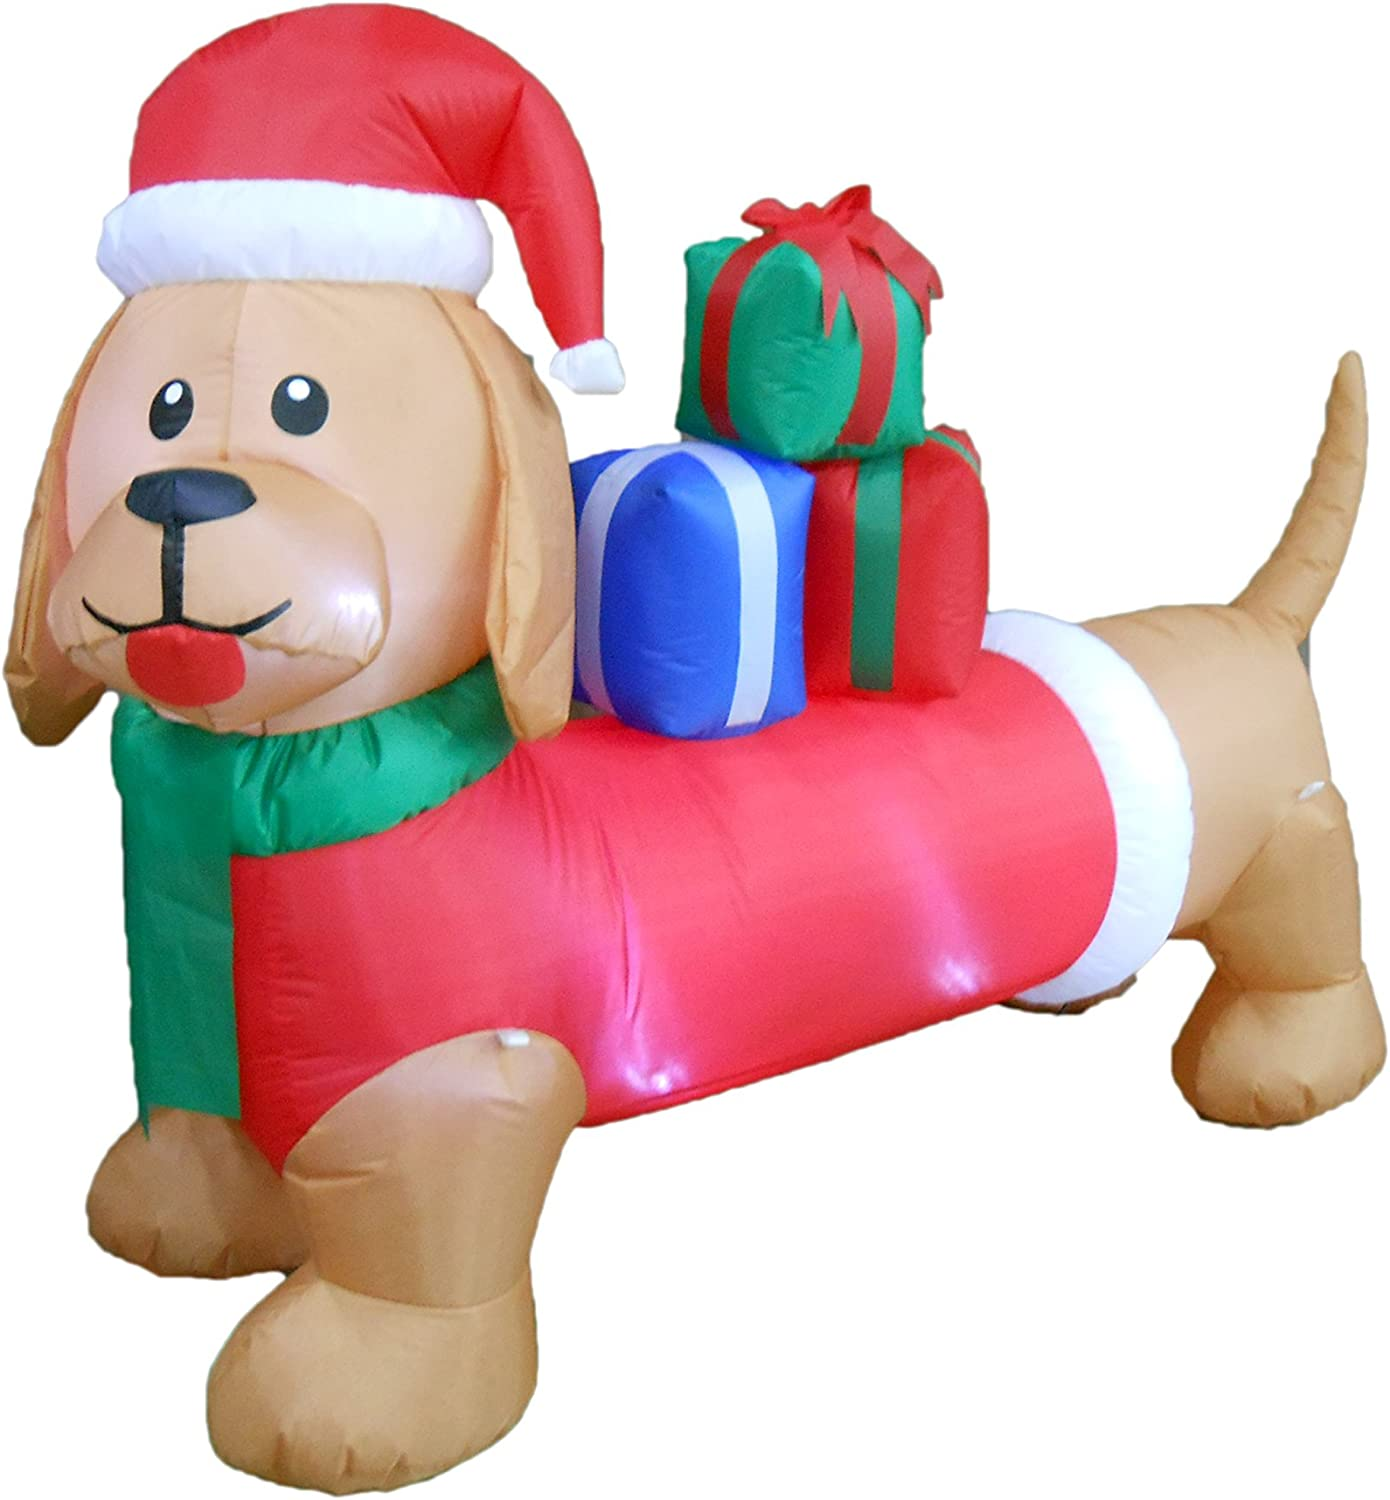 6 Foot Long Christmas Inflatable Dog Yard Decoration